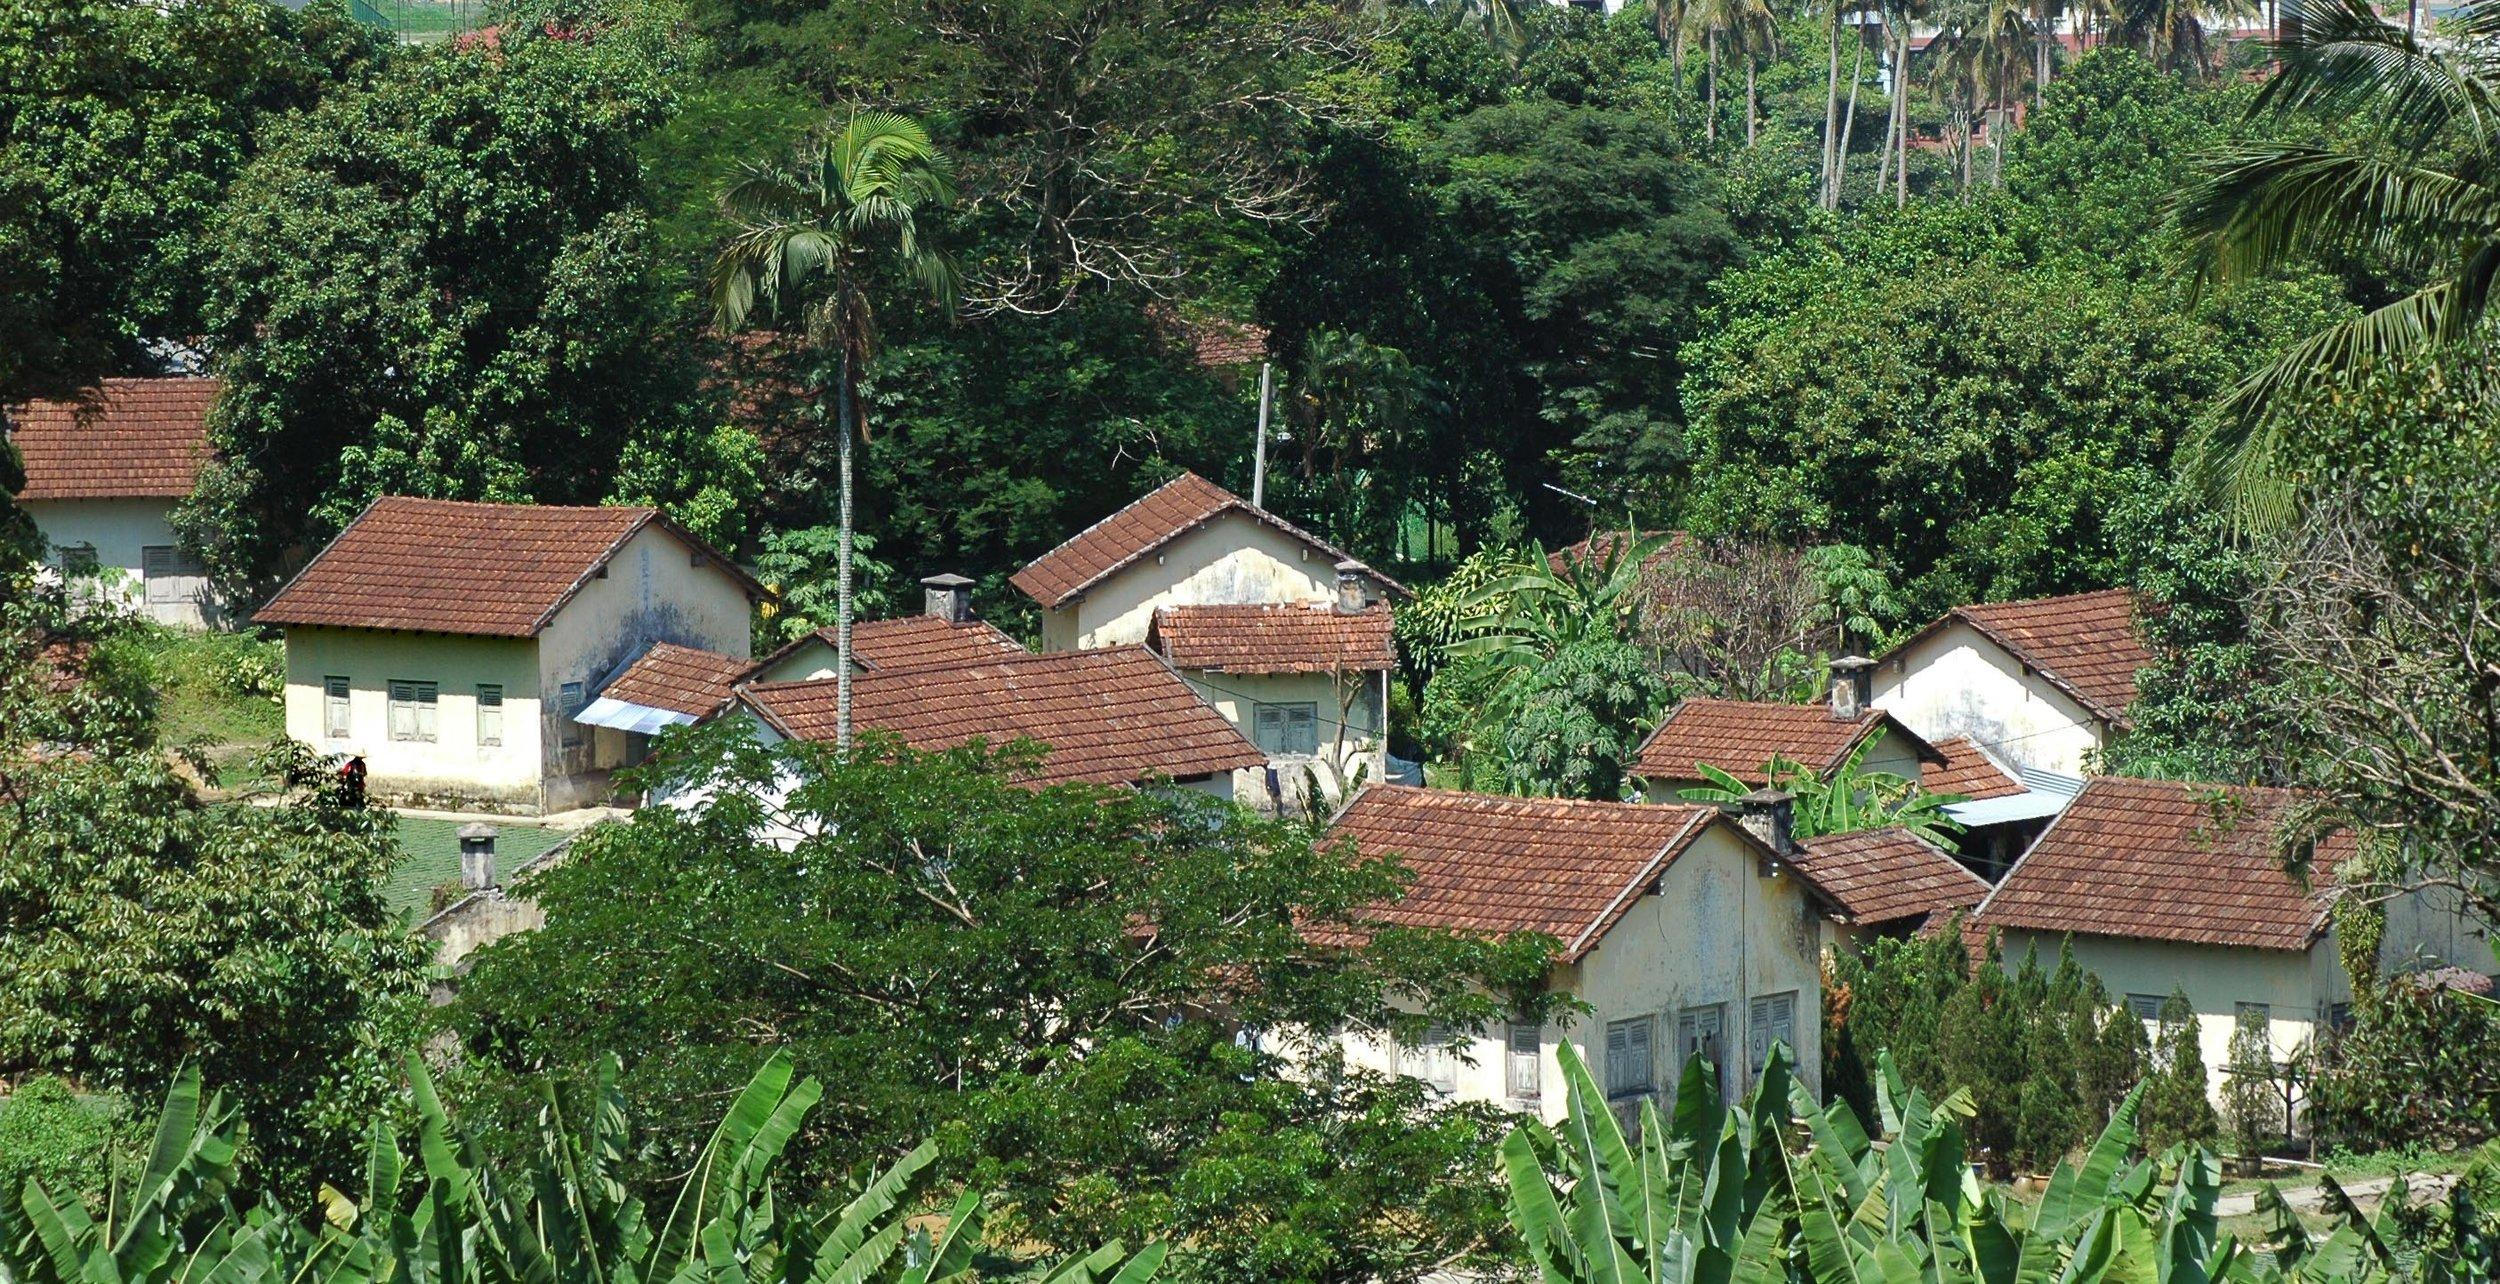 The chalets were of European design and were built to house two, four or six persons. (photo by Dr Lim Yong Long)